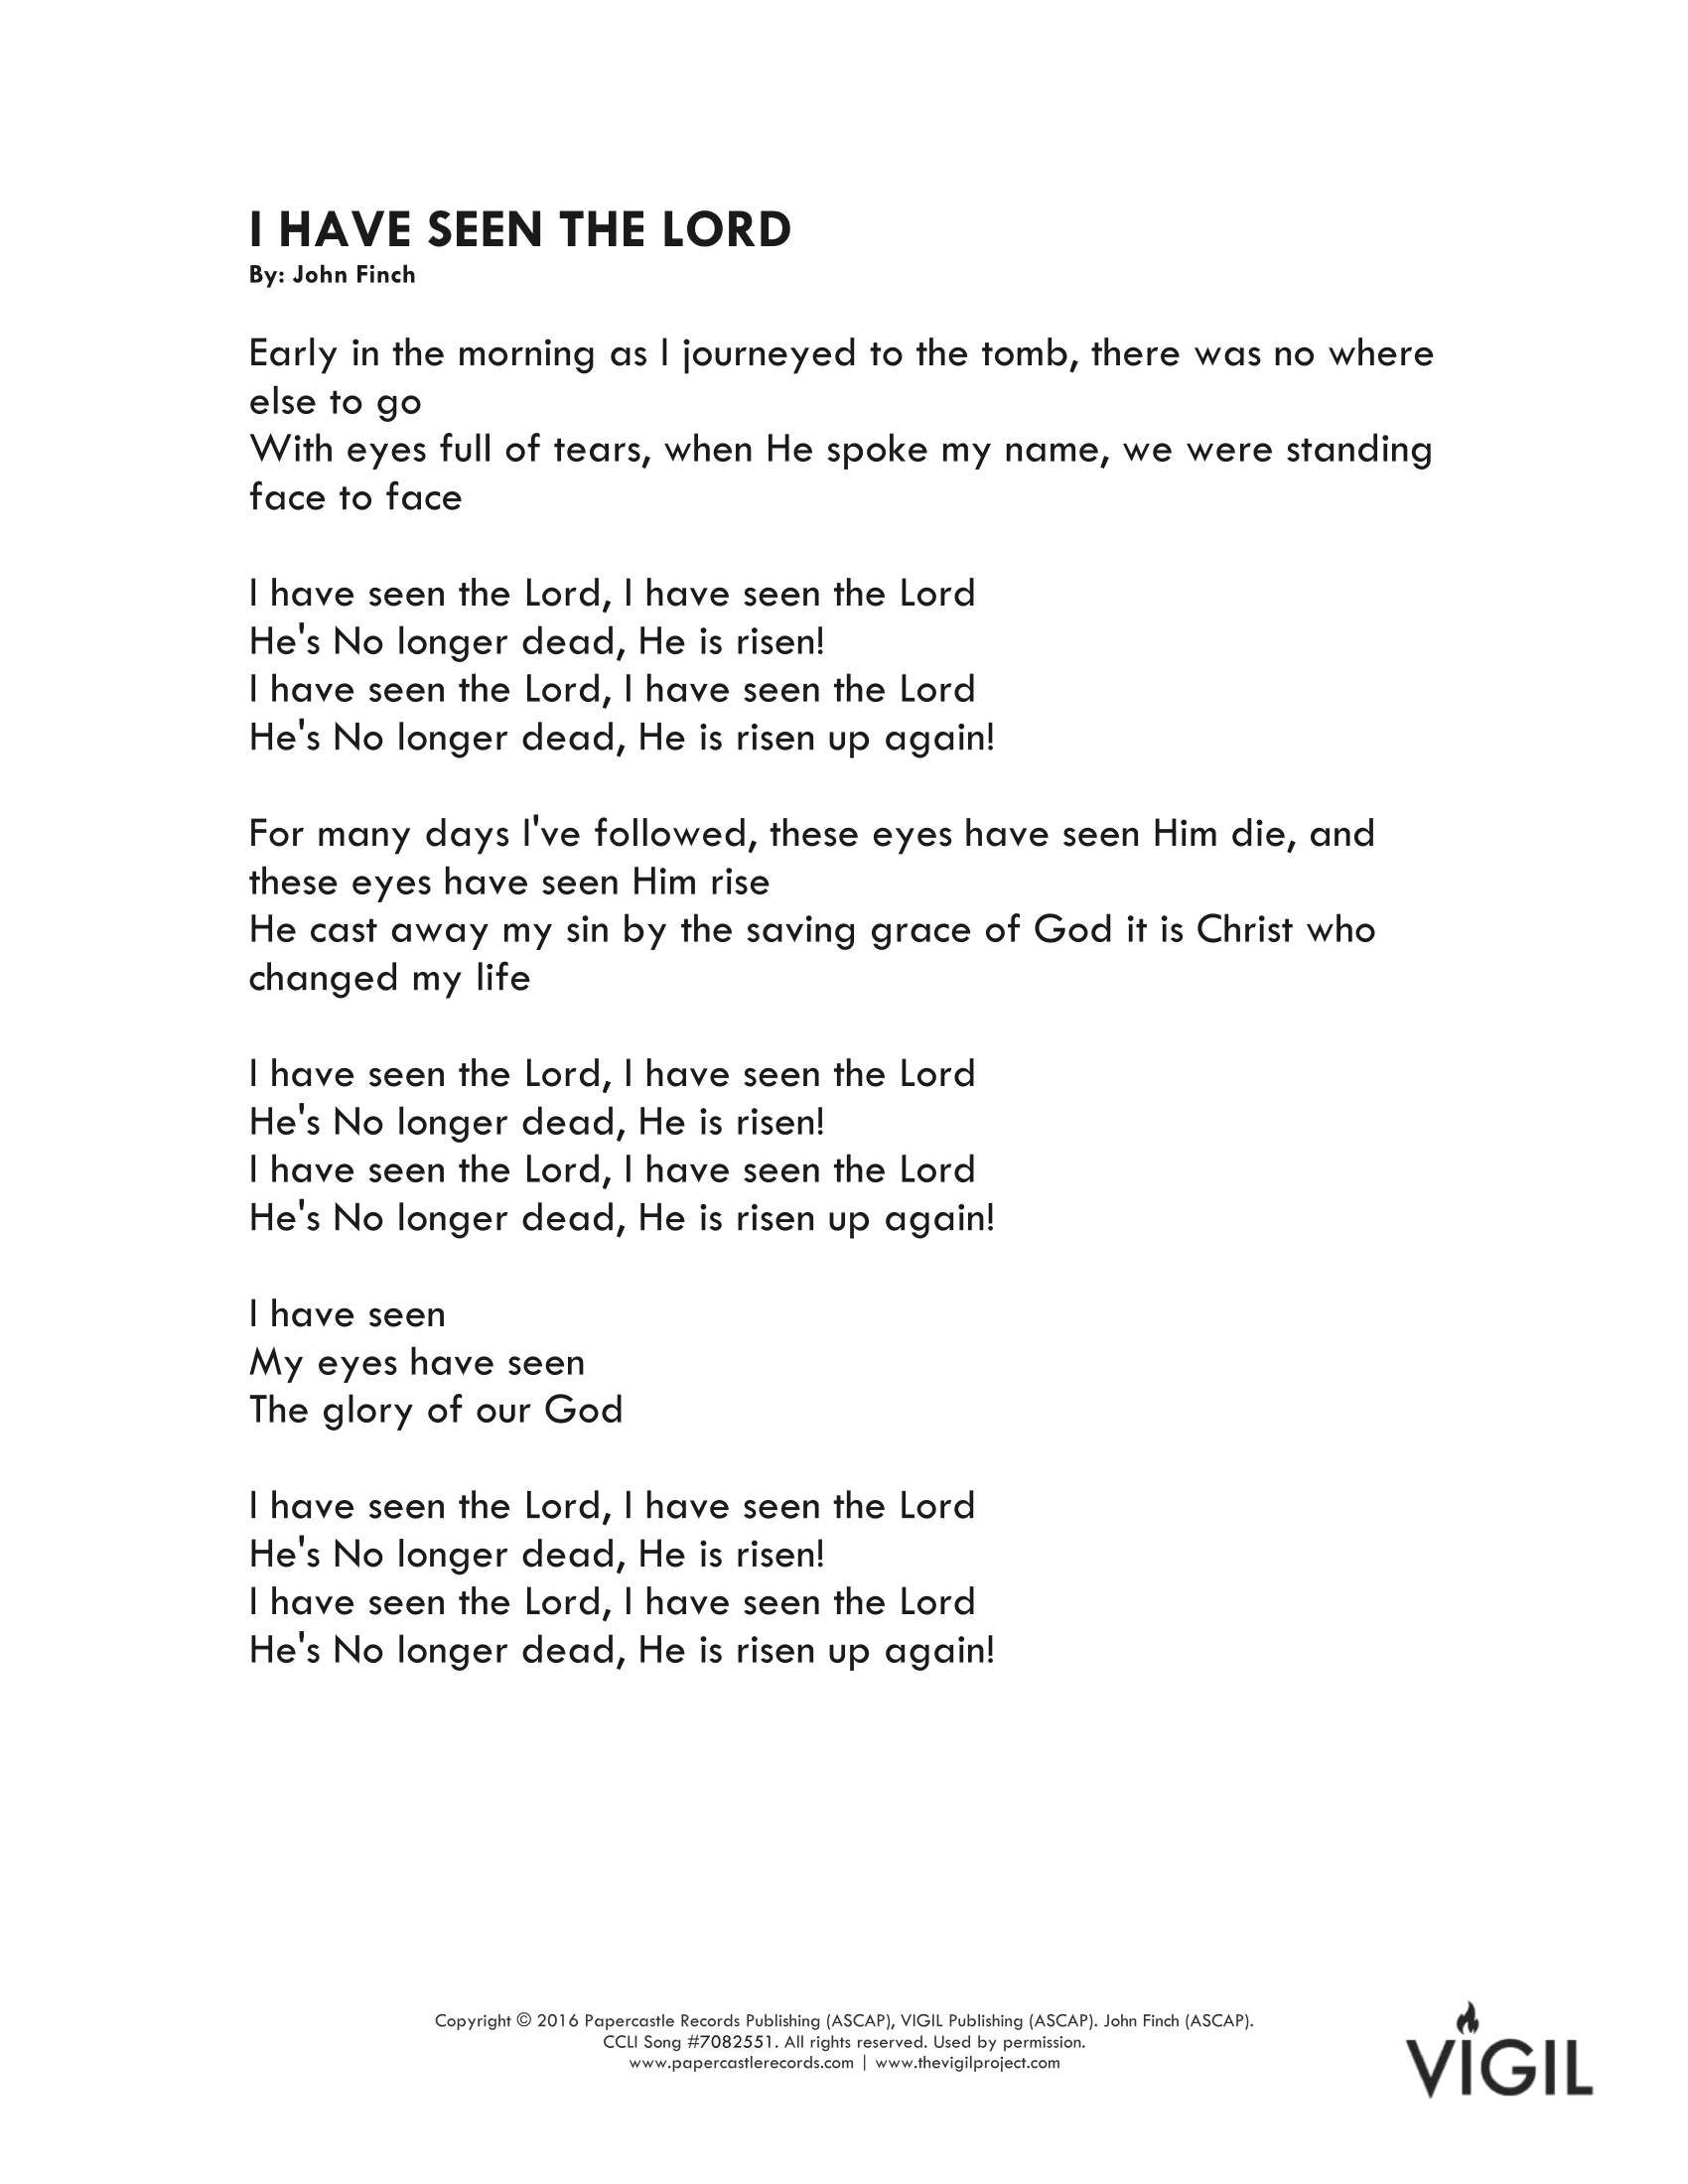 VIGIL S1 - I Have Seen The Lord (Lyrics)-1.png